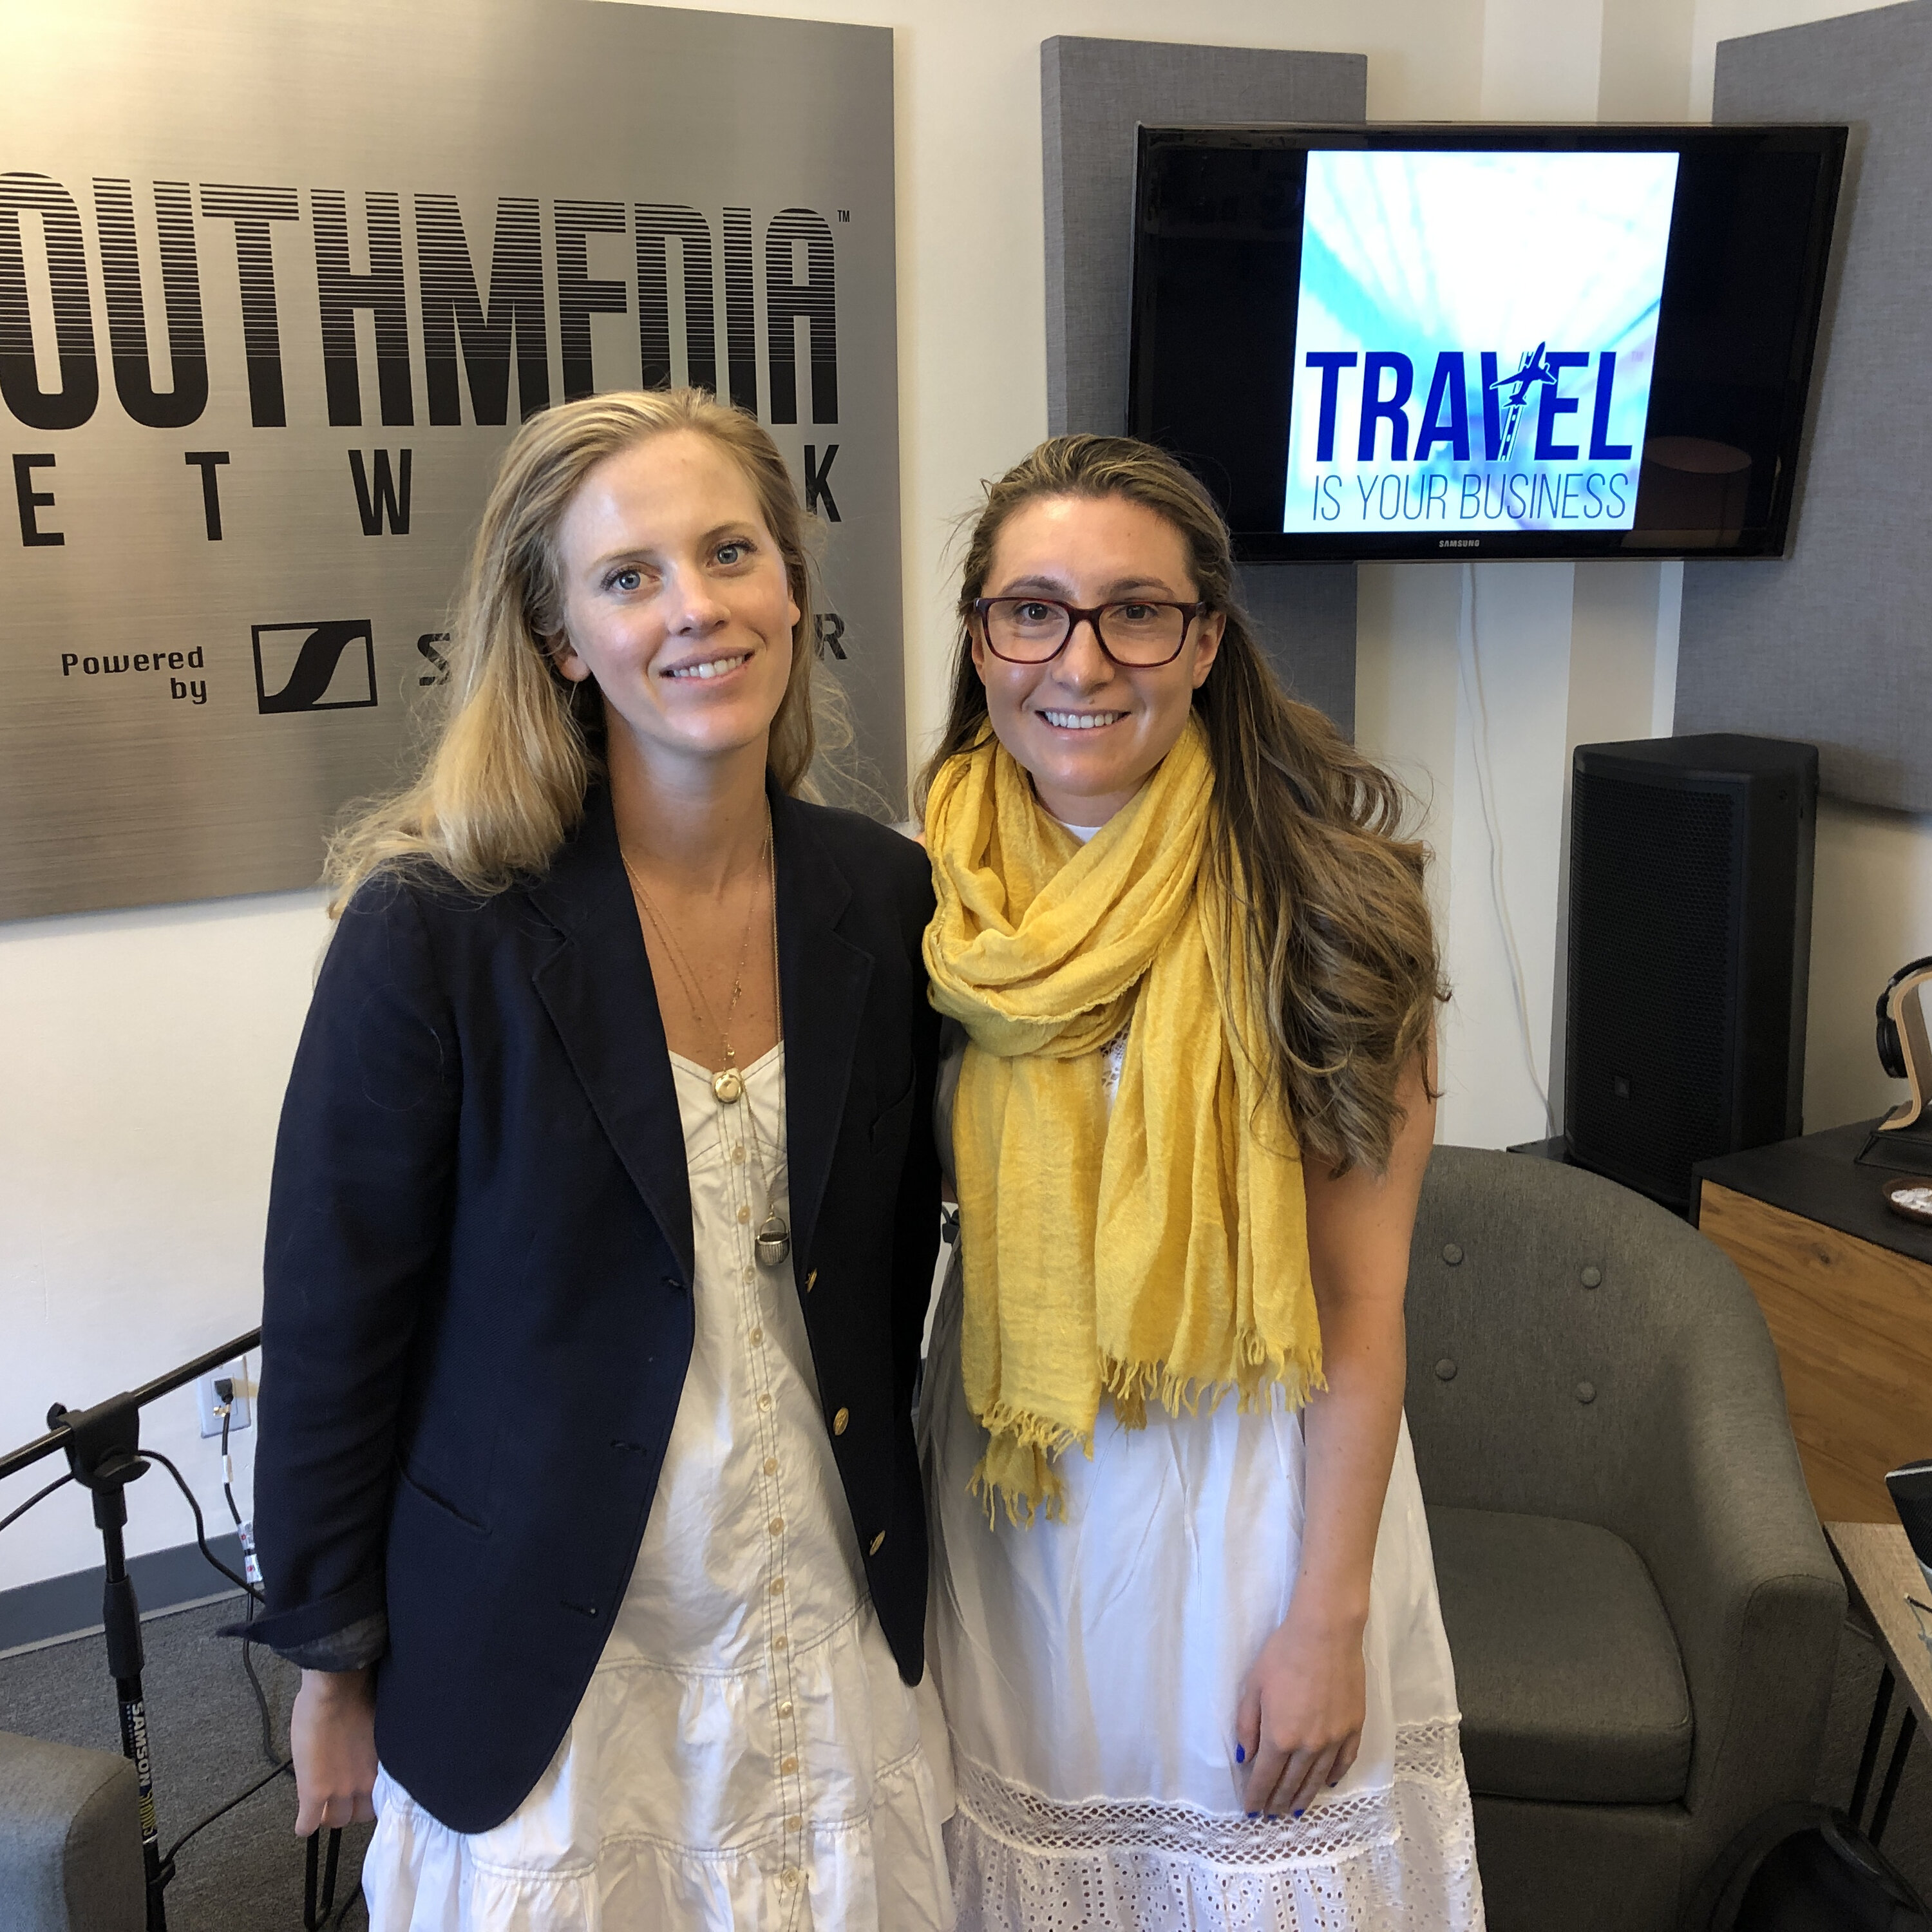 Rachele Caserza of Selina - A New Traveling Lifestyle for Digital Nomads